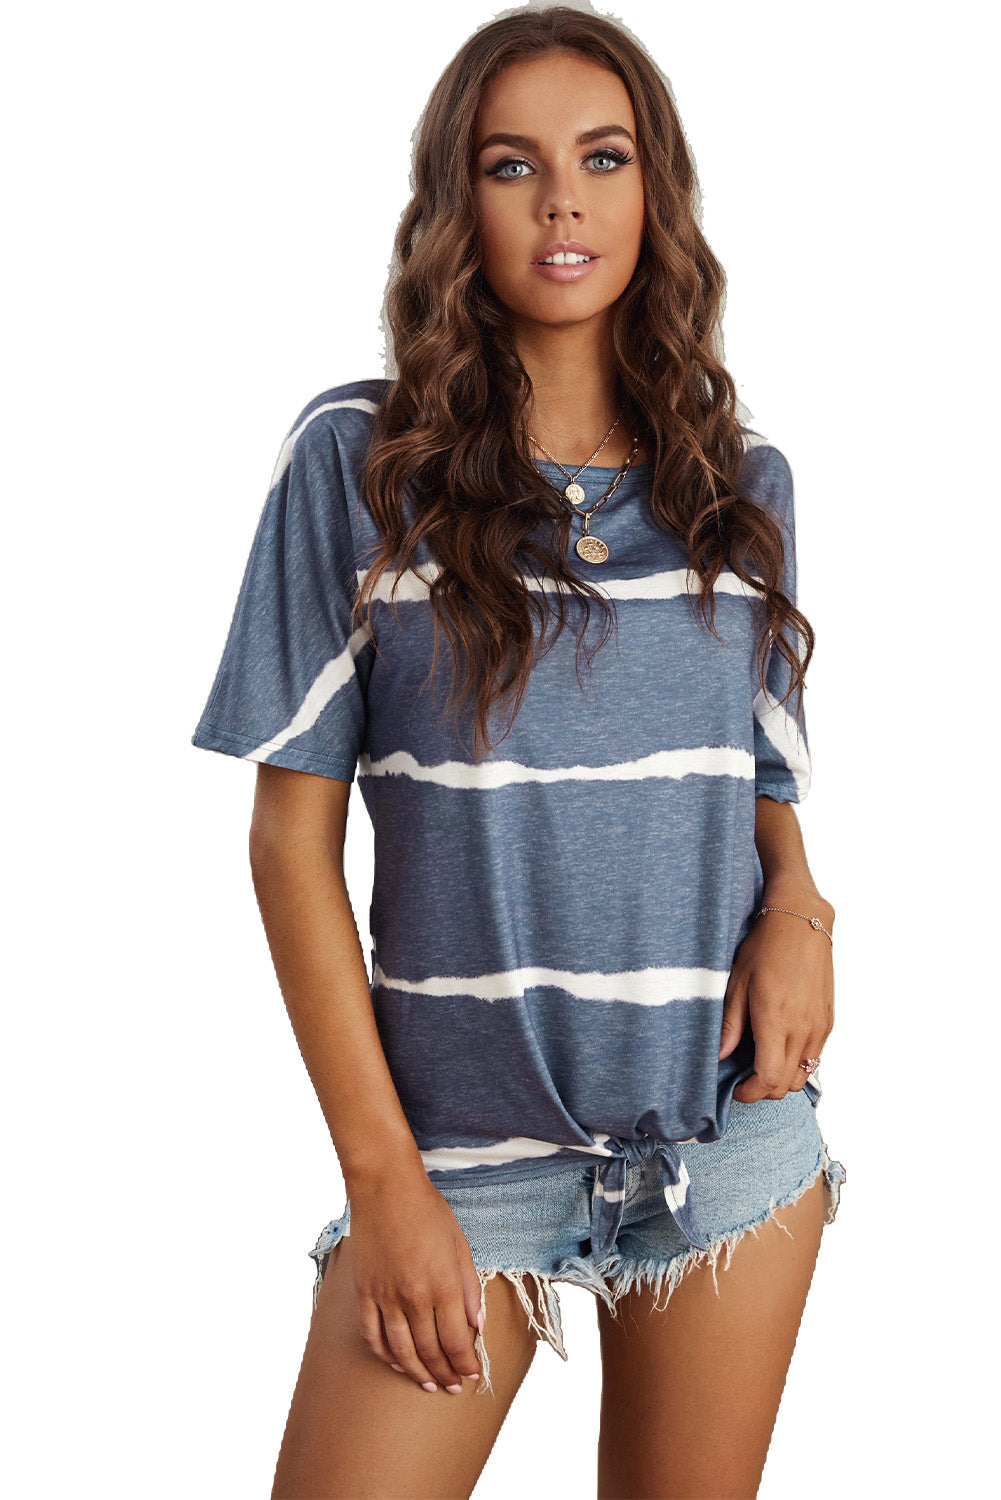 Tie-dye Print Loose T-shirt with tie in front